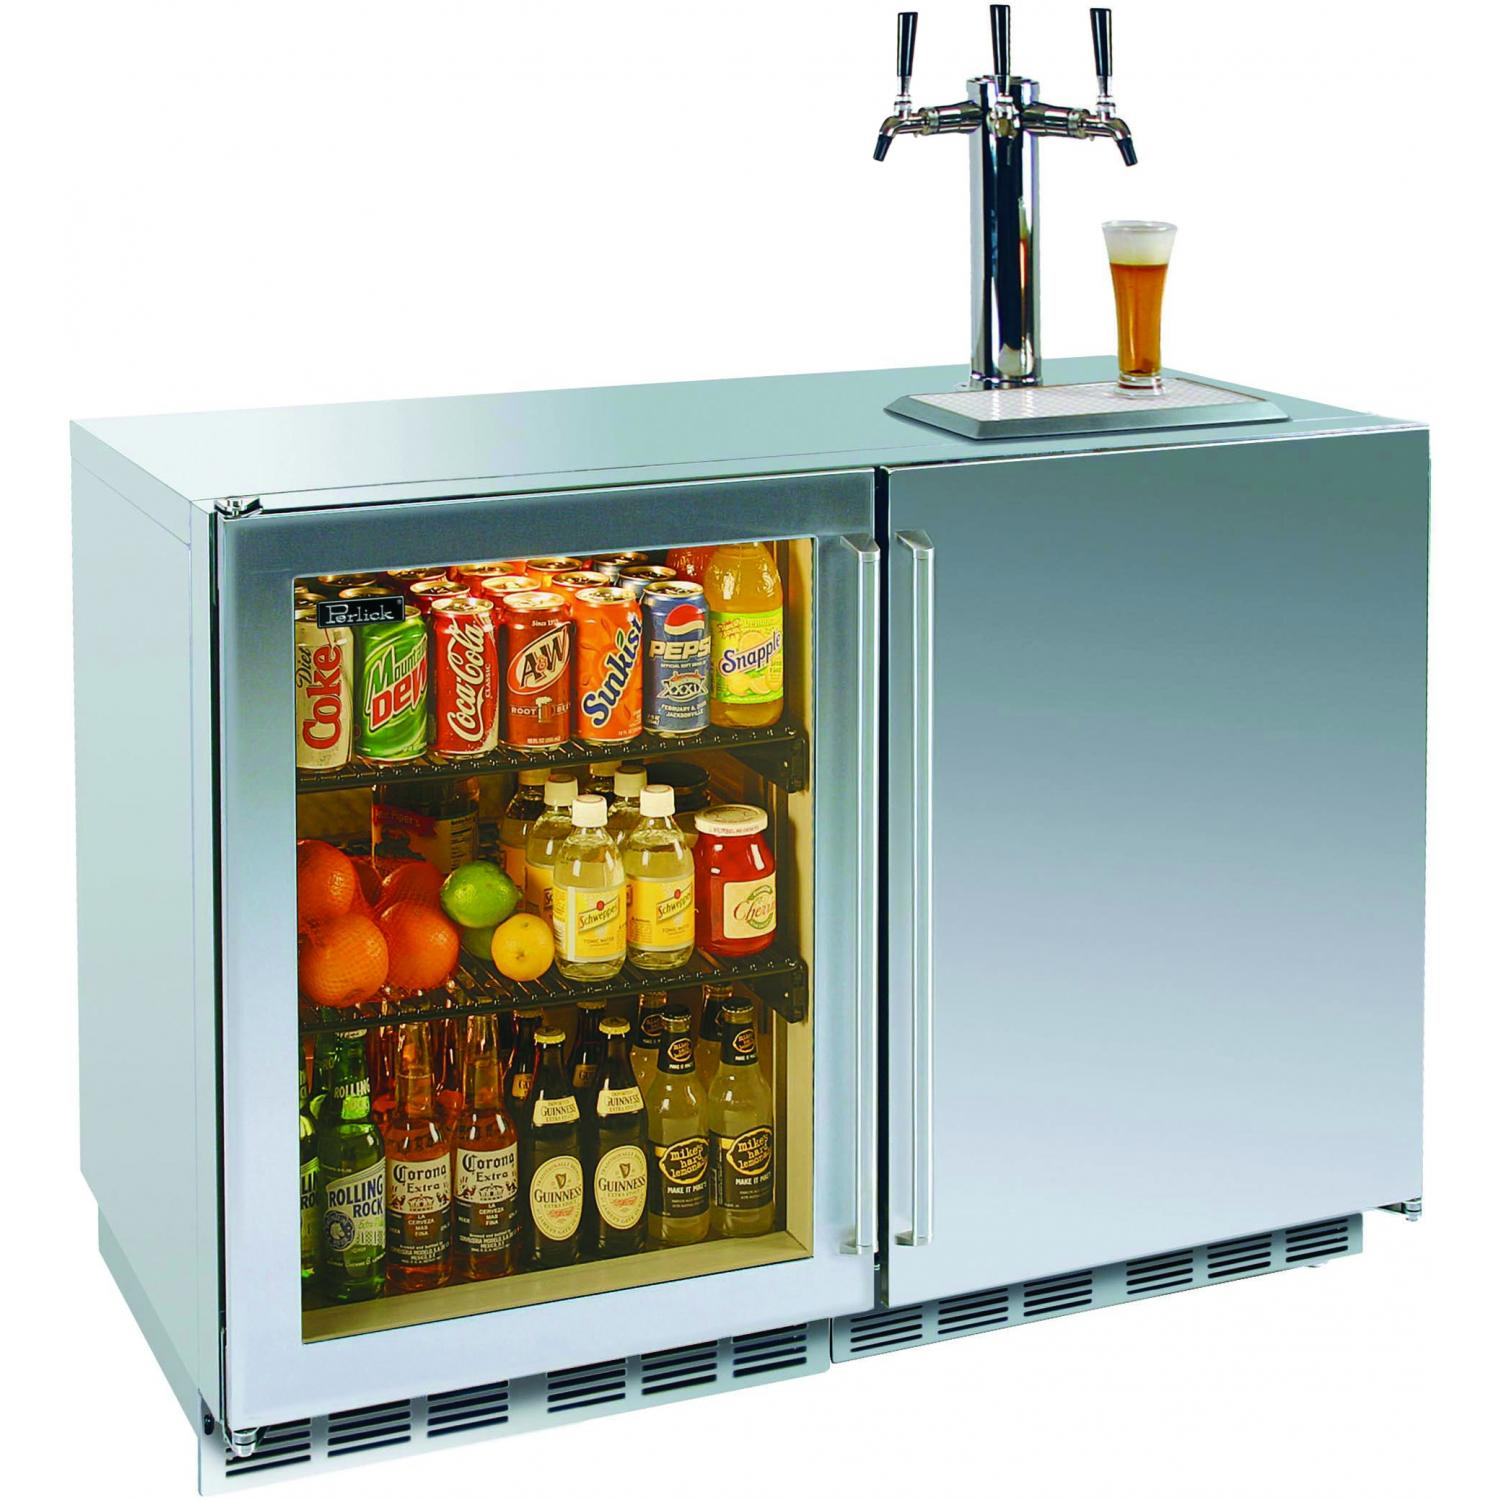 Perlick Refrigerator / Triple Tap Kegerator - Glass Left Door / Stainless Steel Right Door / Stainless Steel Cabinet - HP48RT-S-3L-1R3